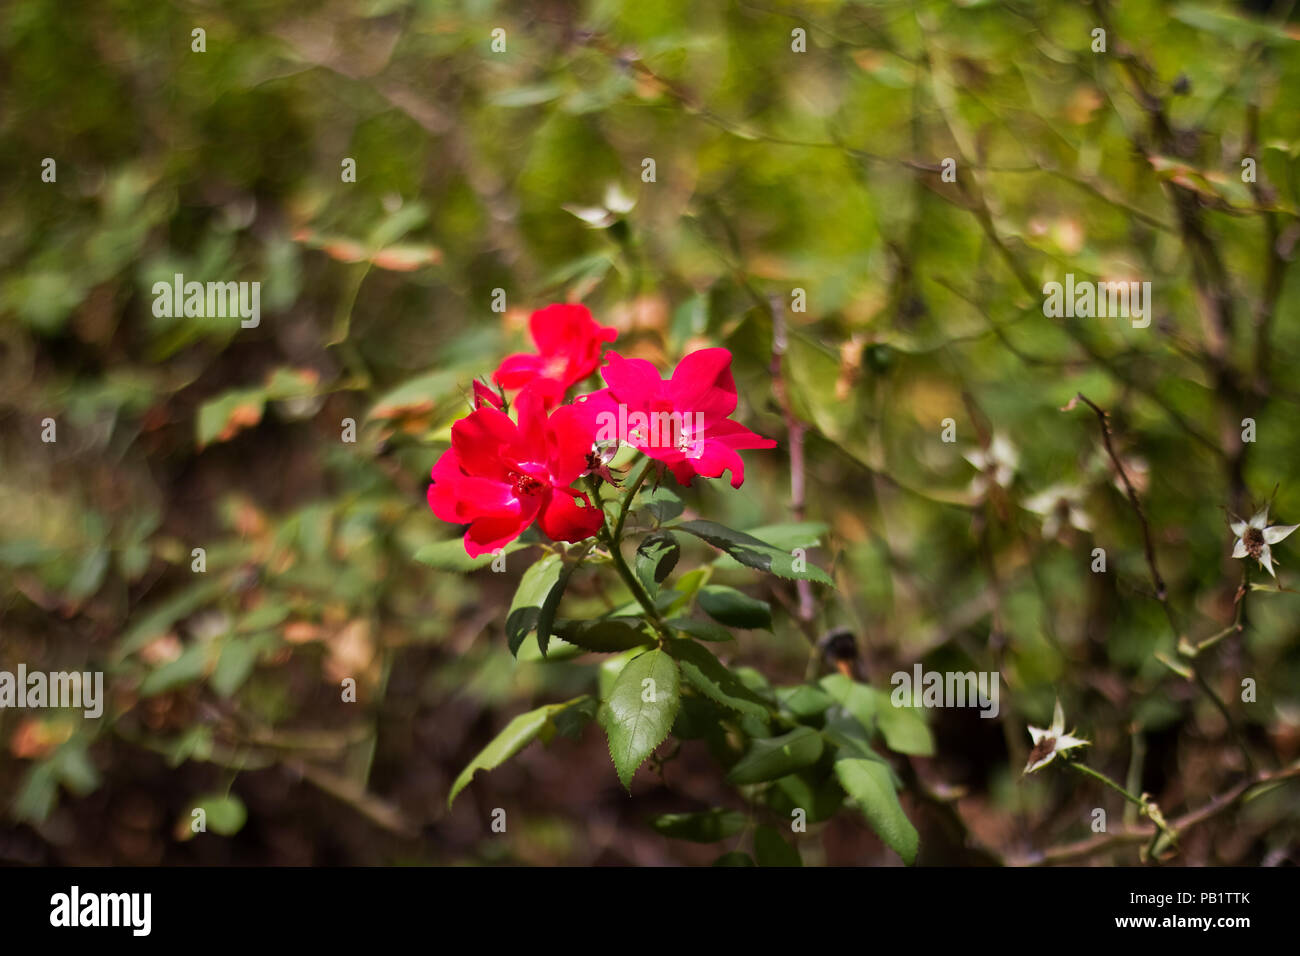 Beautiful flowers blooming in flower garden at the city park stock beautiful flowers blooming in flower garden at the city park izmirmasajfo